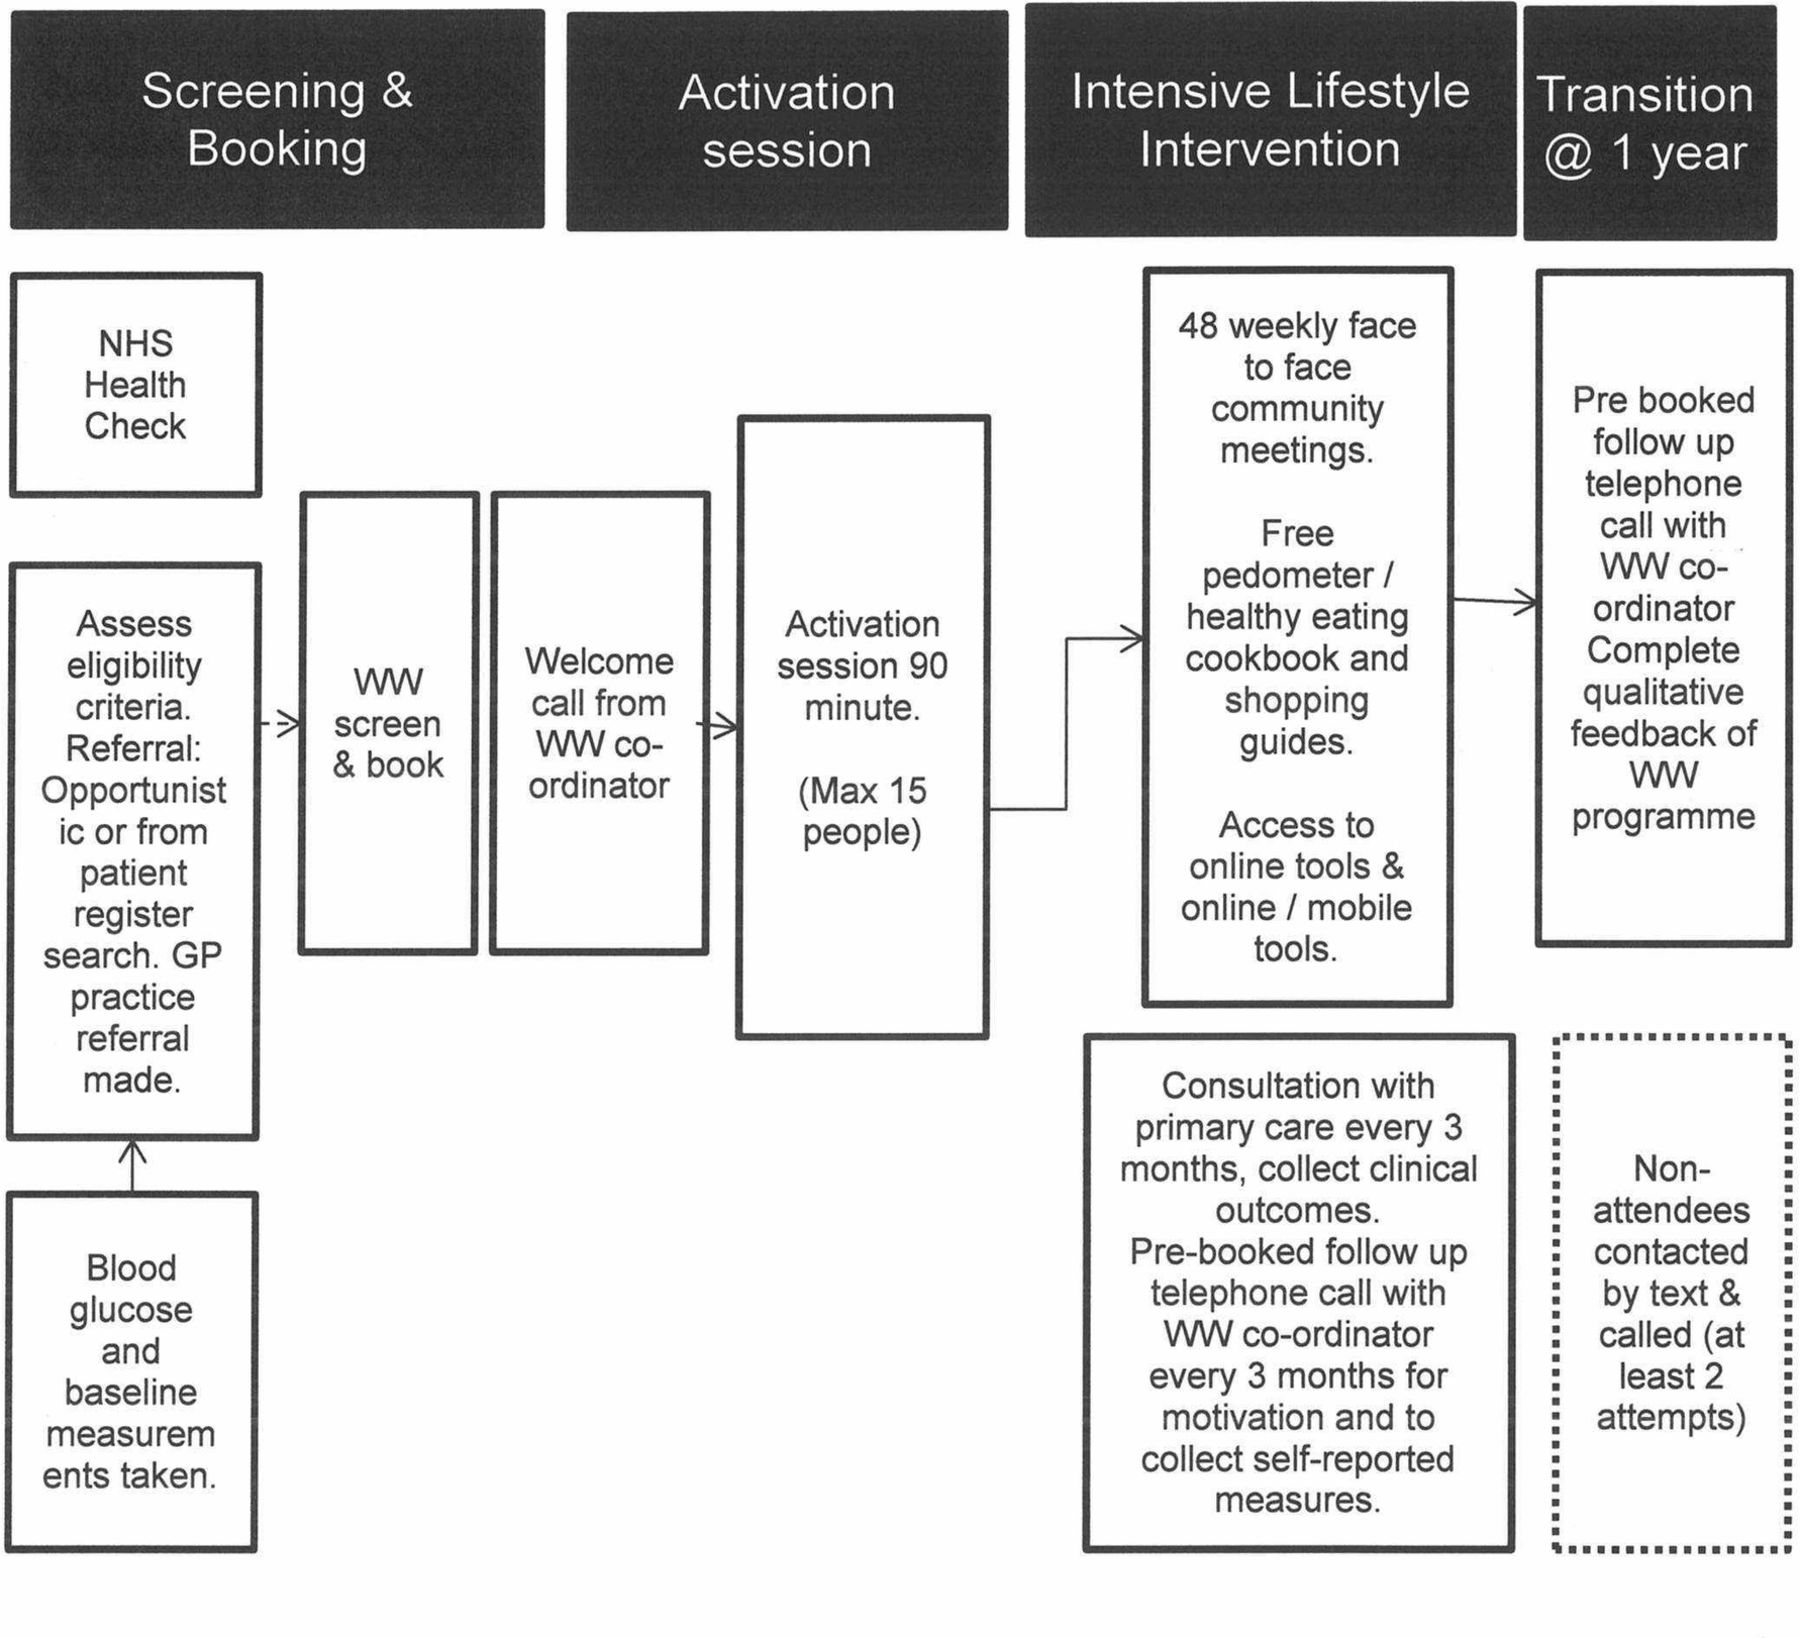 evaluation of a type 2 diabetes prevention program using a commercial weight management provider